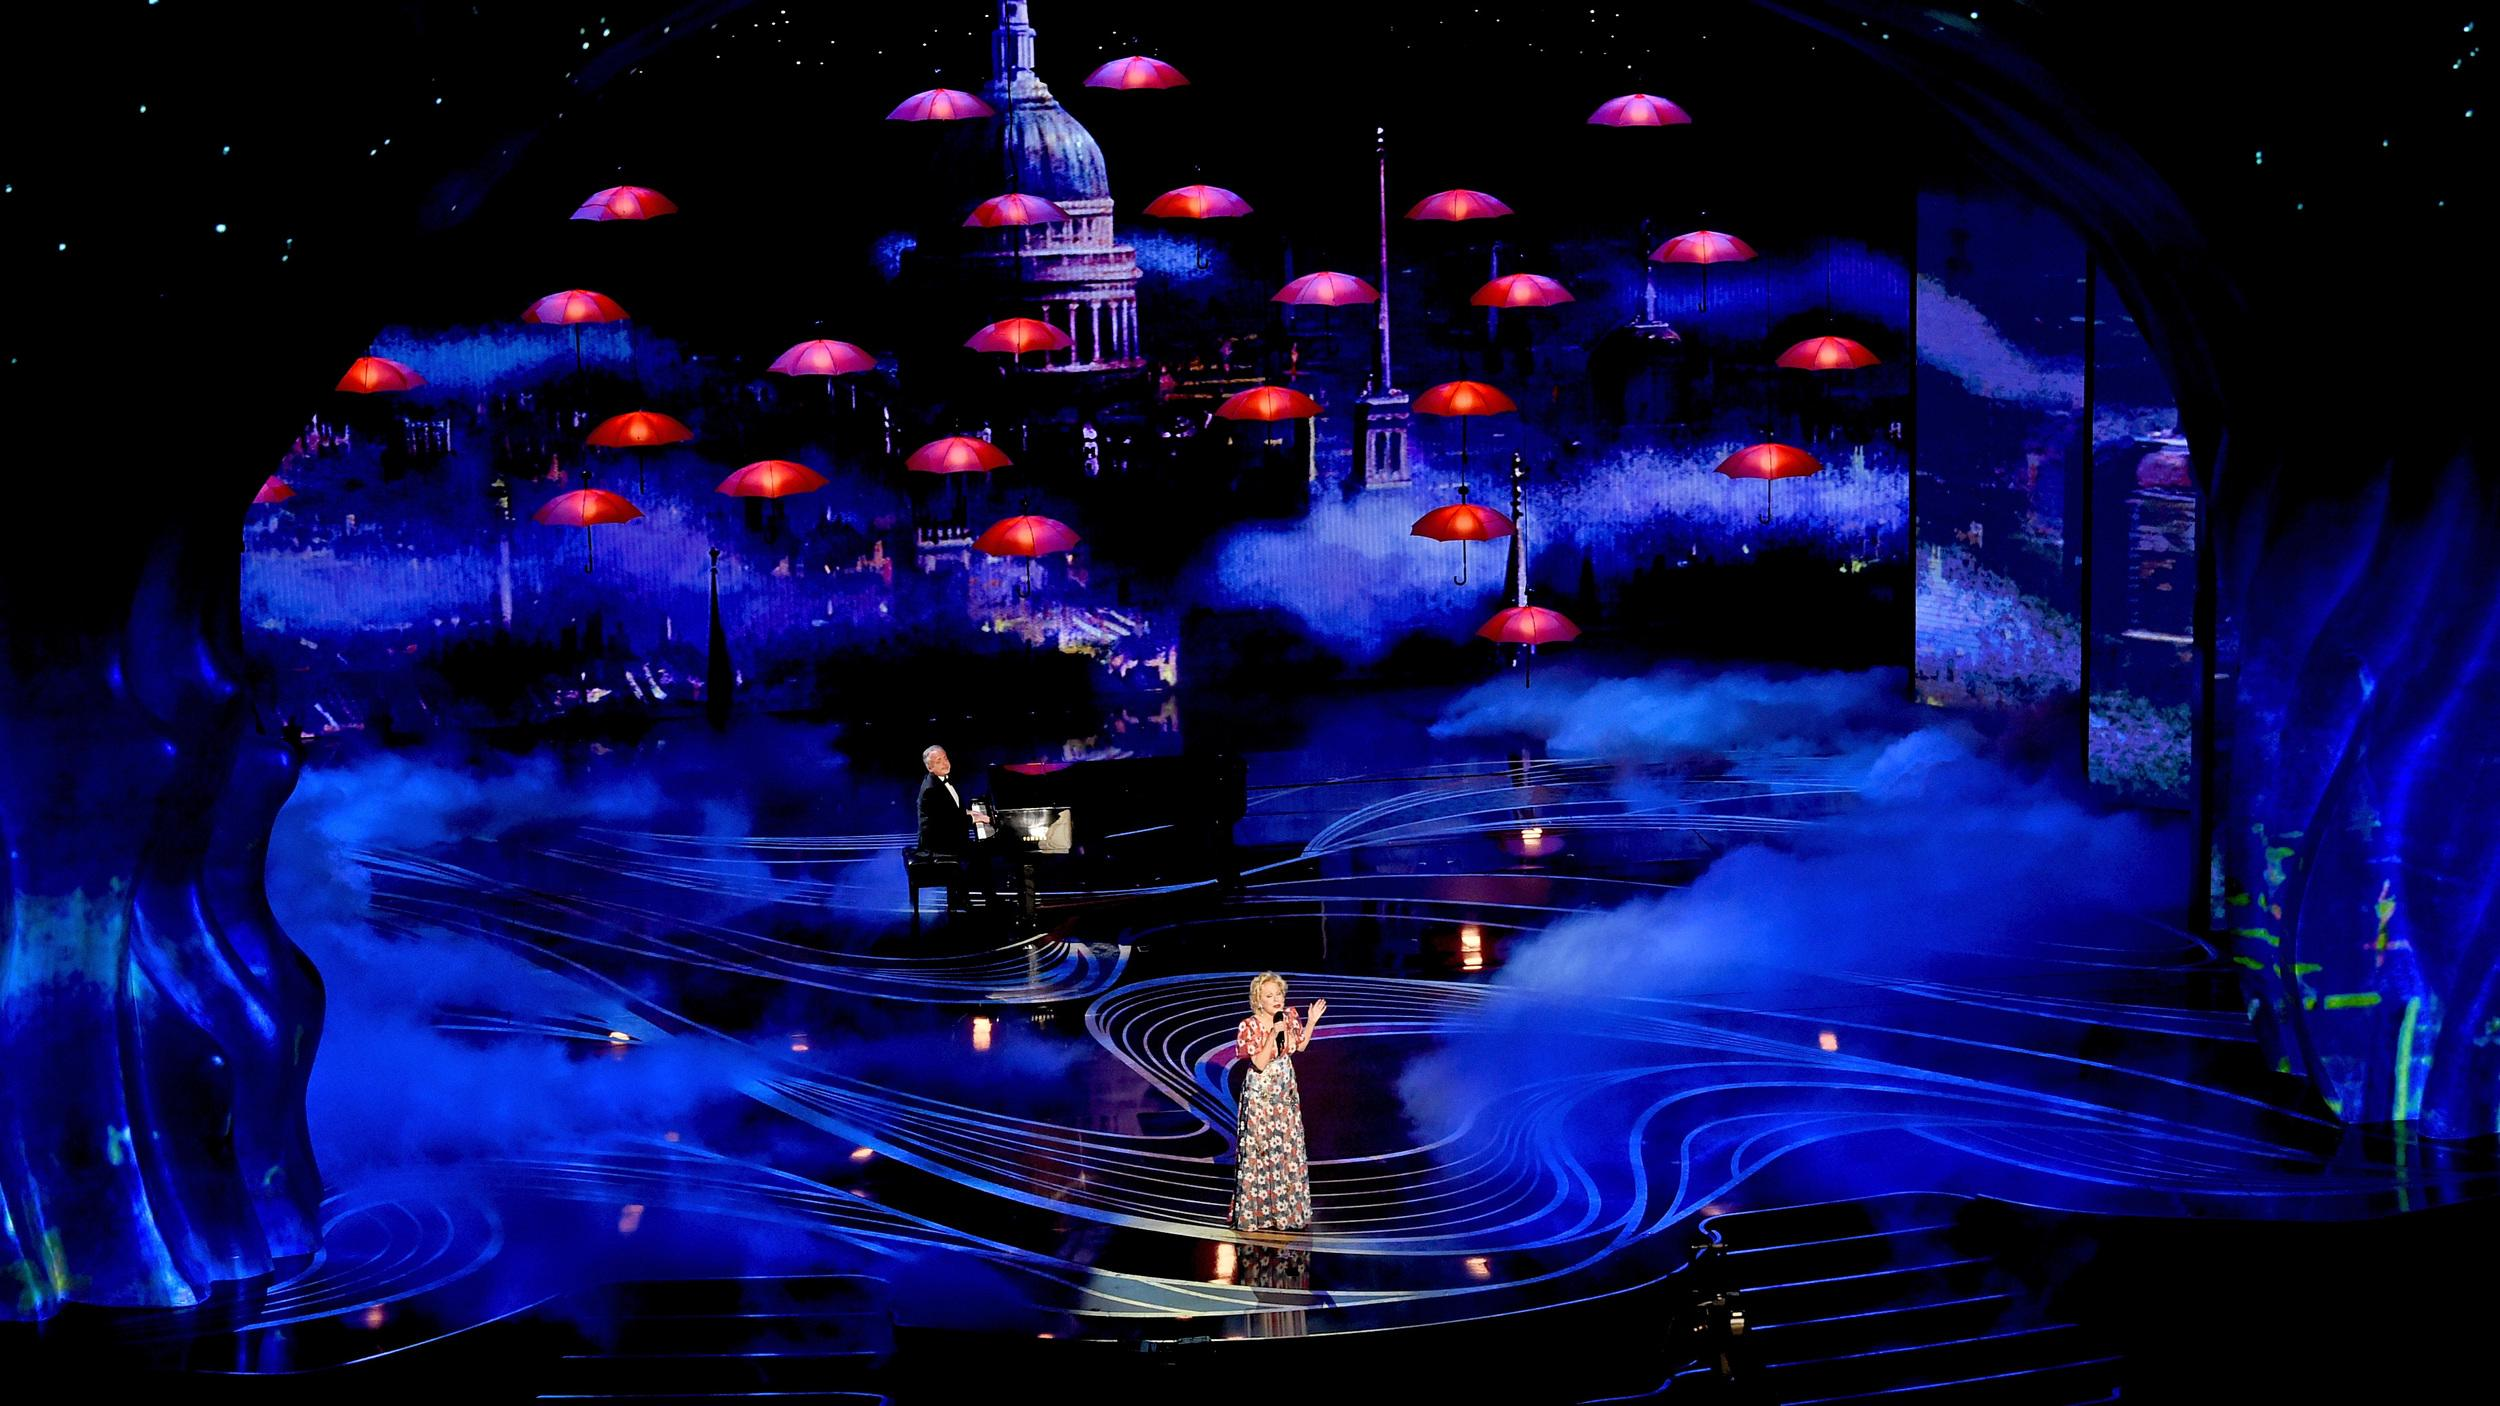 HOLLYWOOD, CALIFORNIA - FEBRUARY 24:(EDITORS NOTE: Retransmission with alternate crop.) (L-R) Marc Shaiman and Bette Midler perform onstage during the 91st Annual Academy Awards at Dolby Theatre on February 24, 2019 in Hollywood, California. (Photo by Kevin Winter/Getty Images)